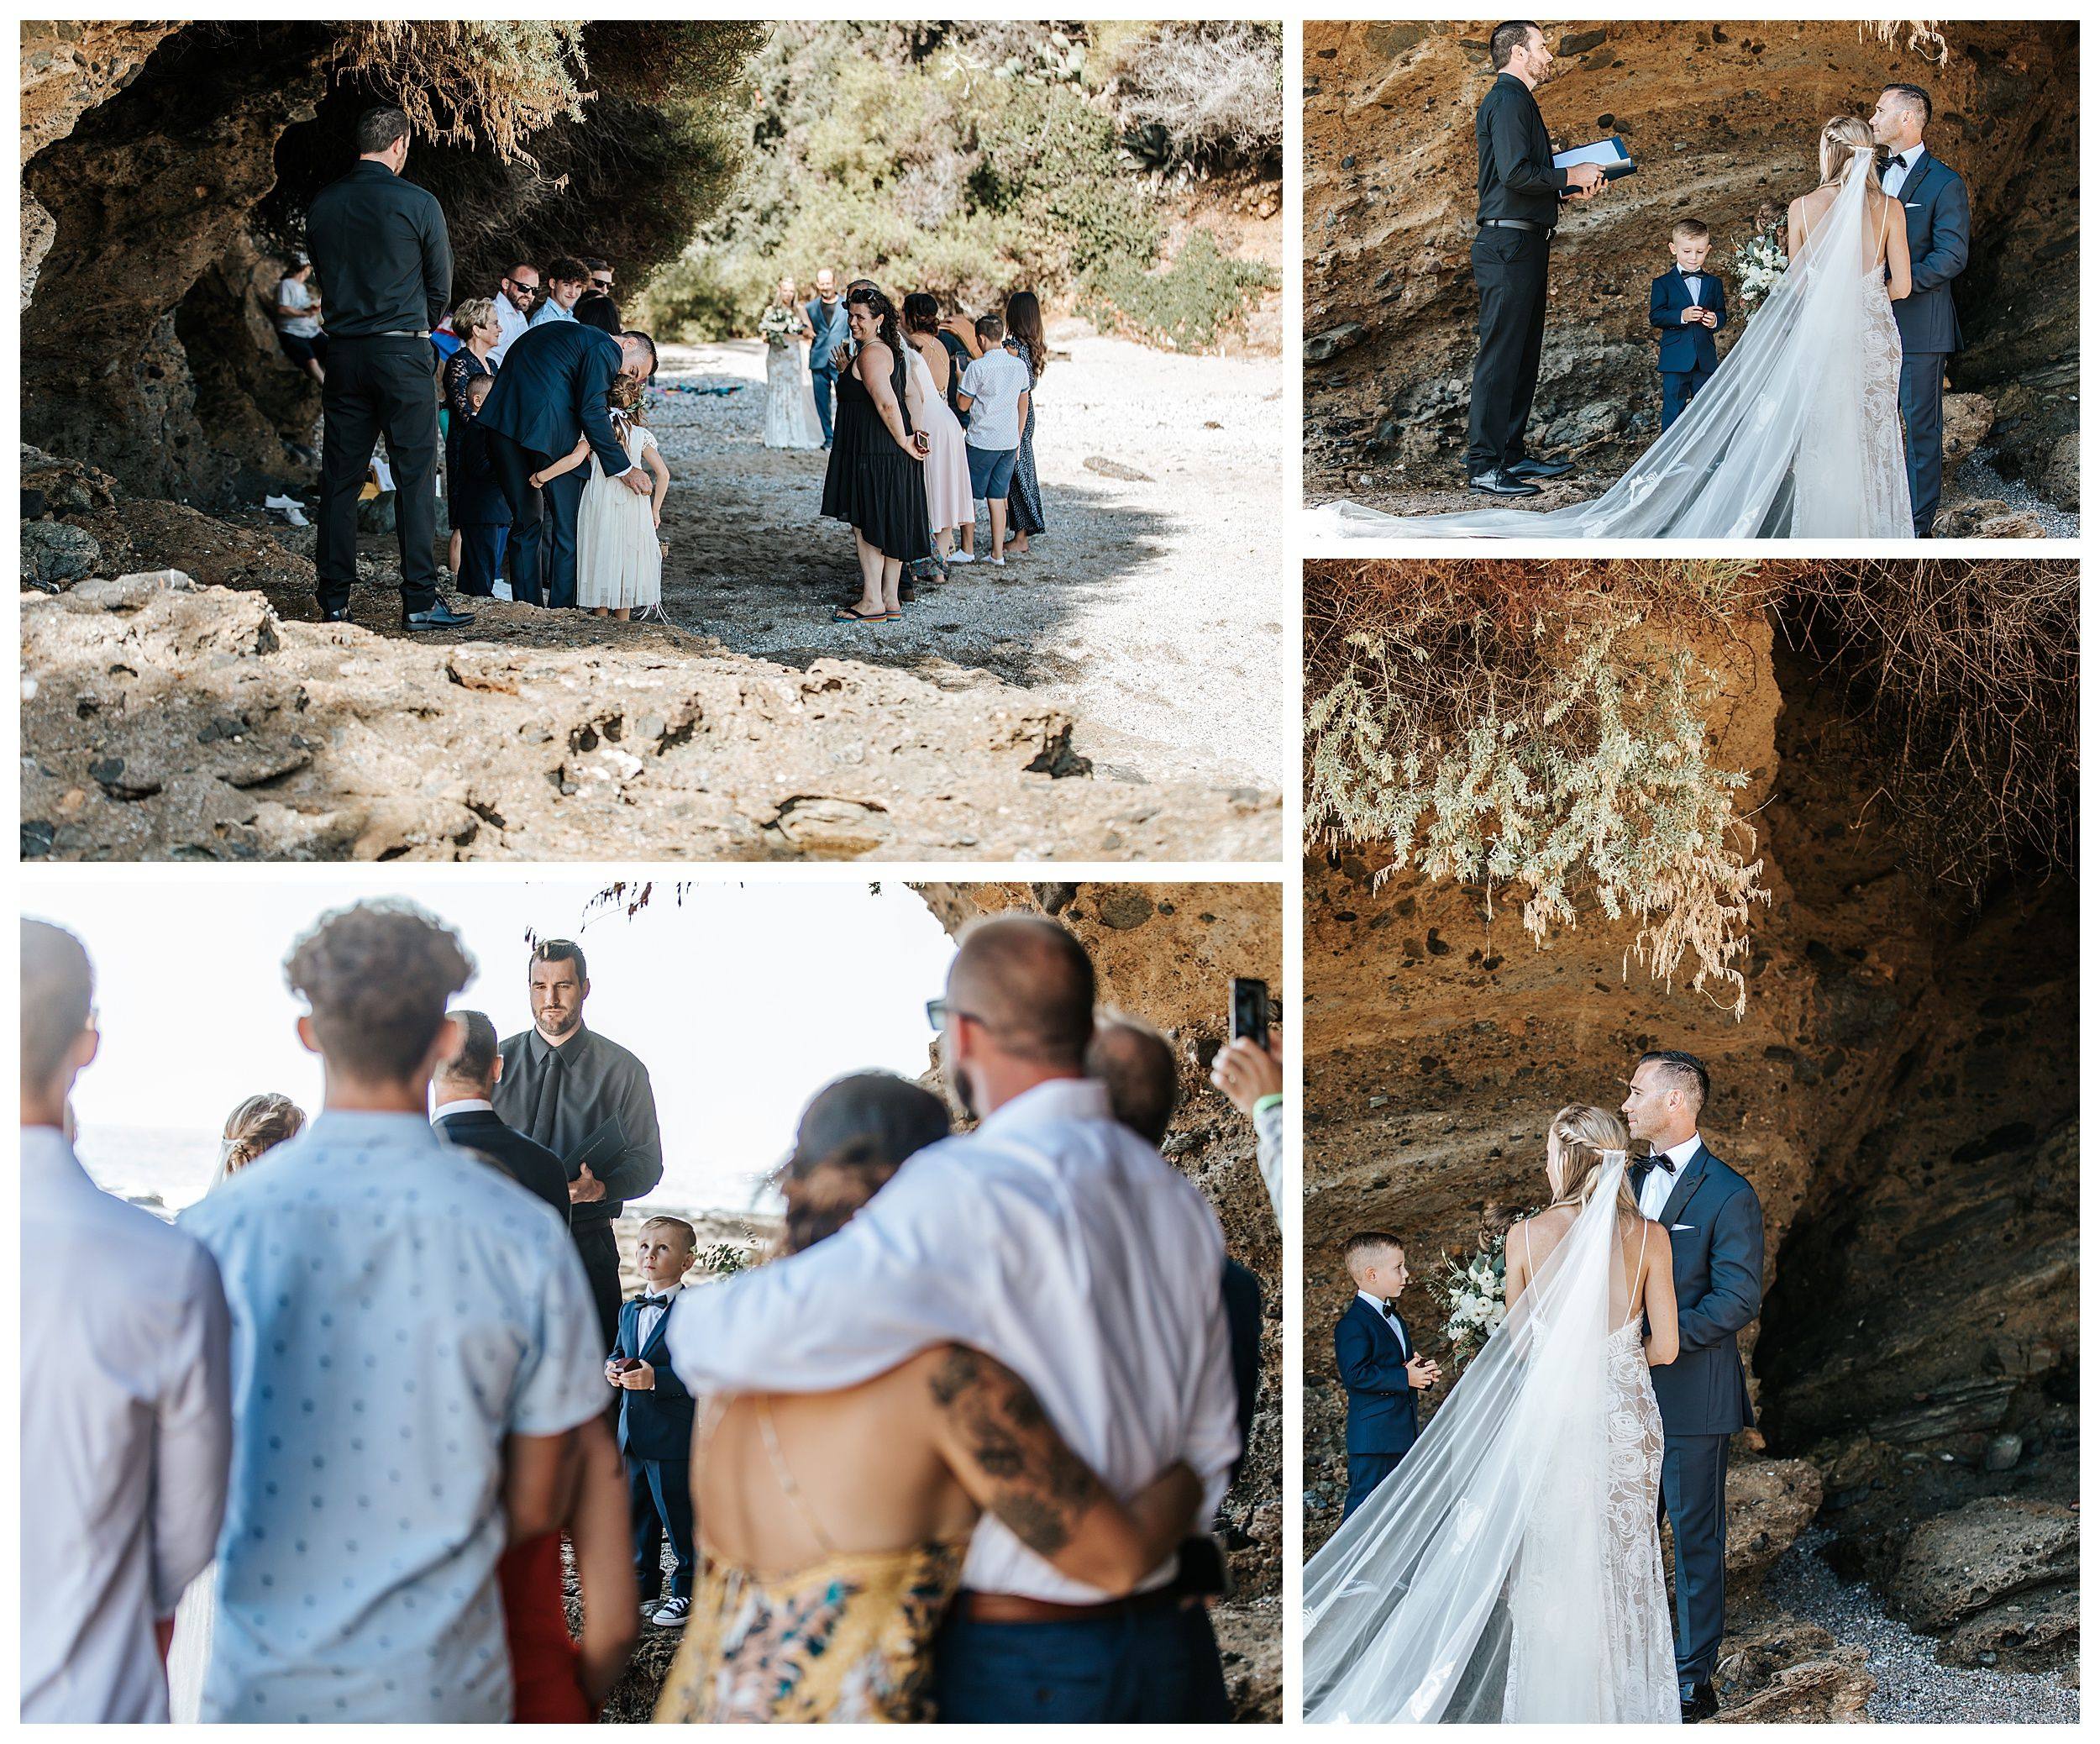 beach wedding ceremony, beach elopement ceremony, beach wedding inspiration